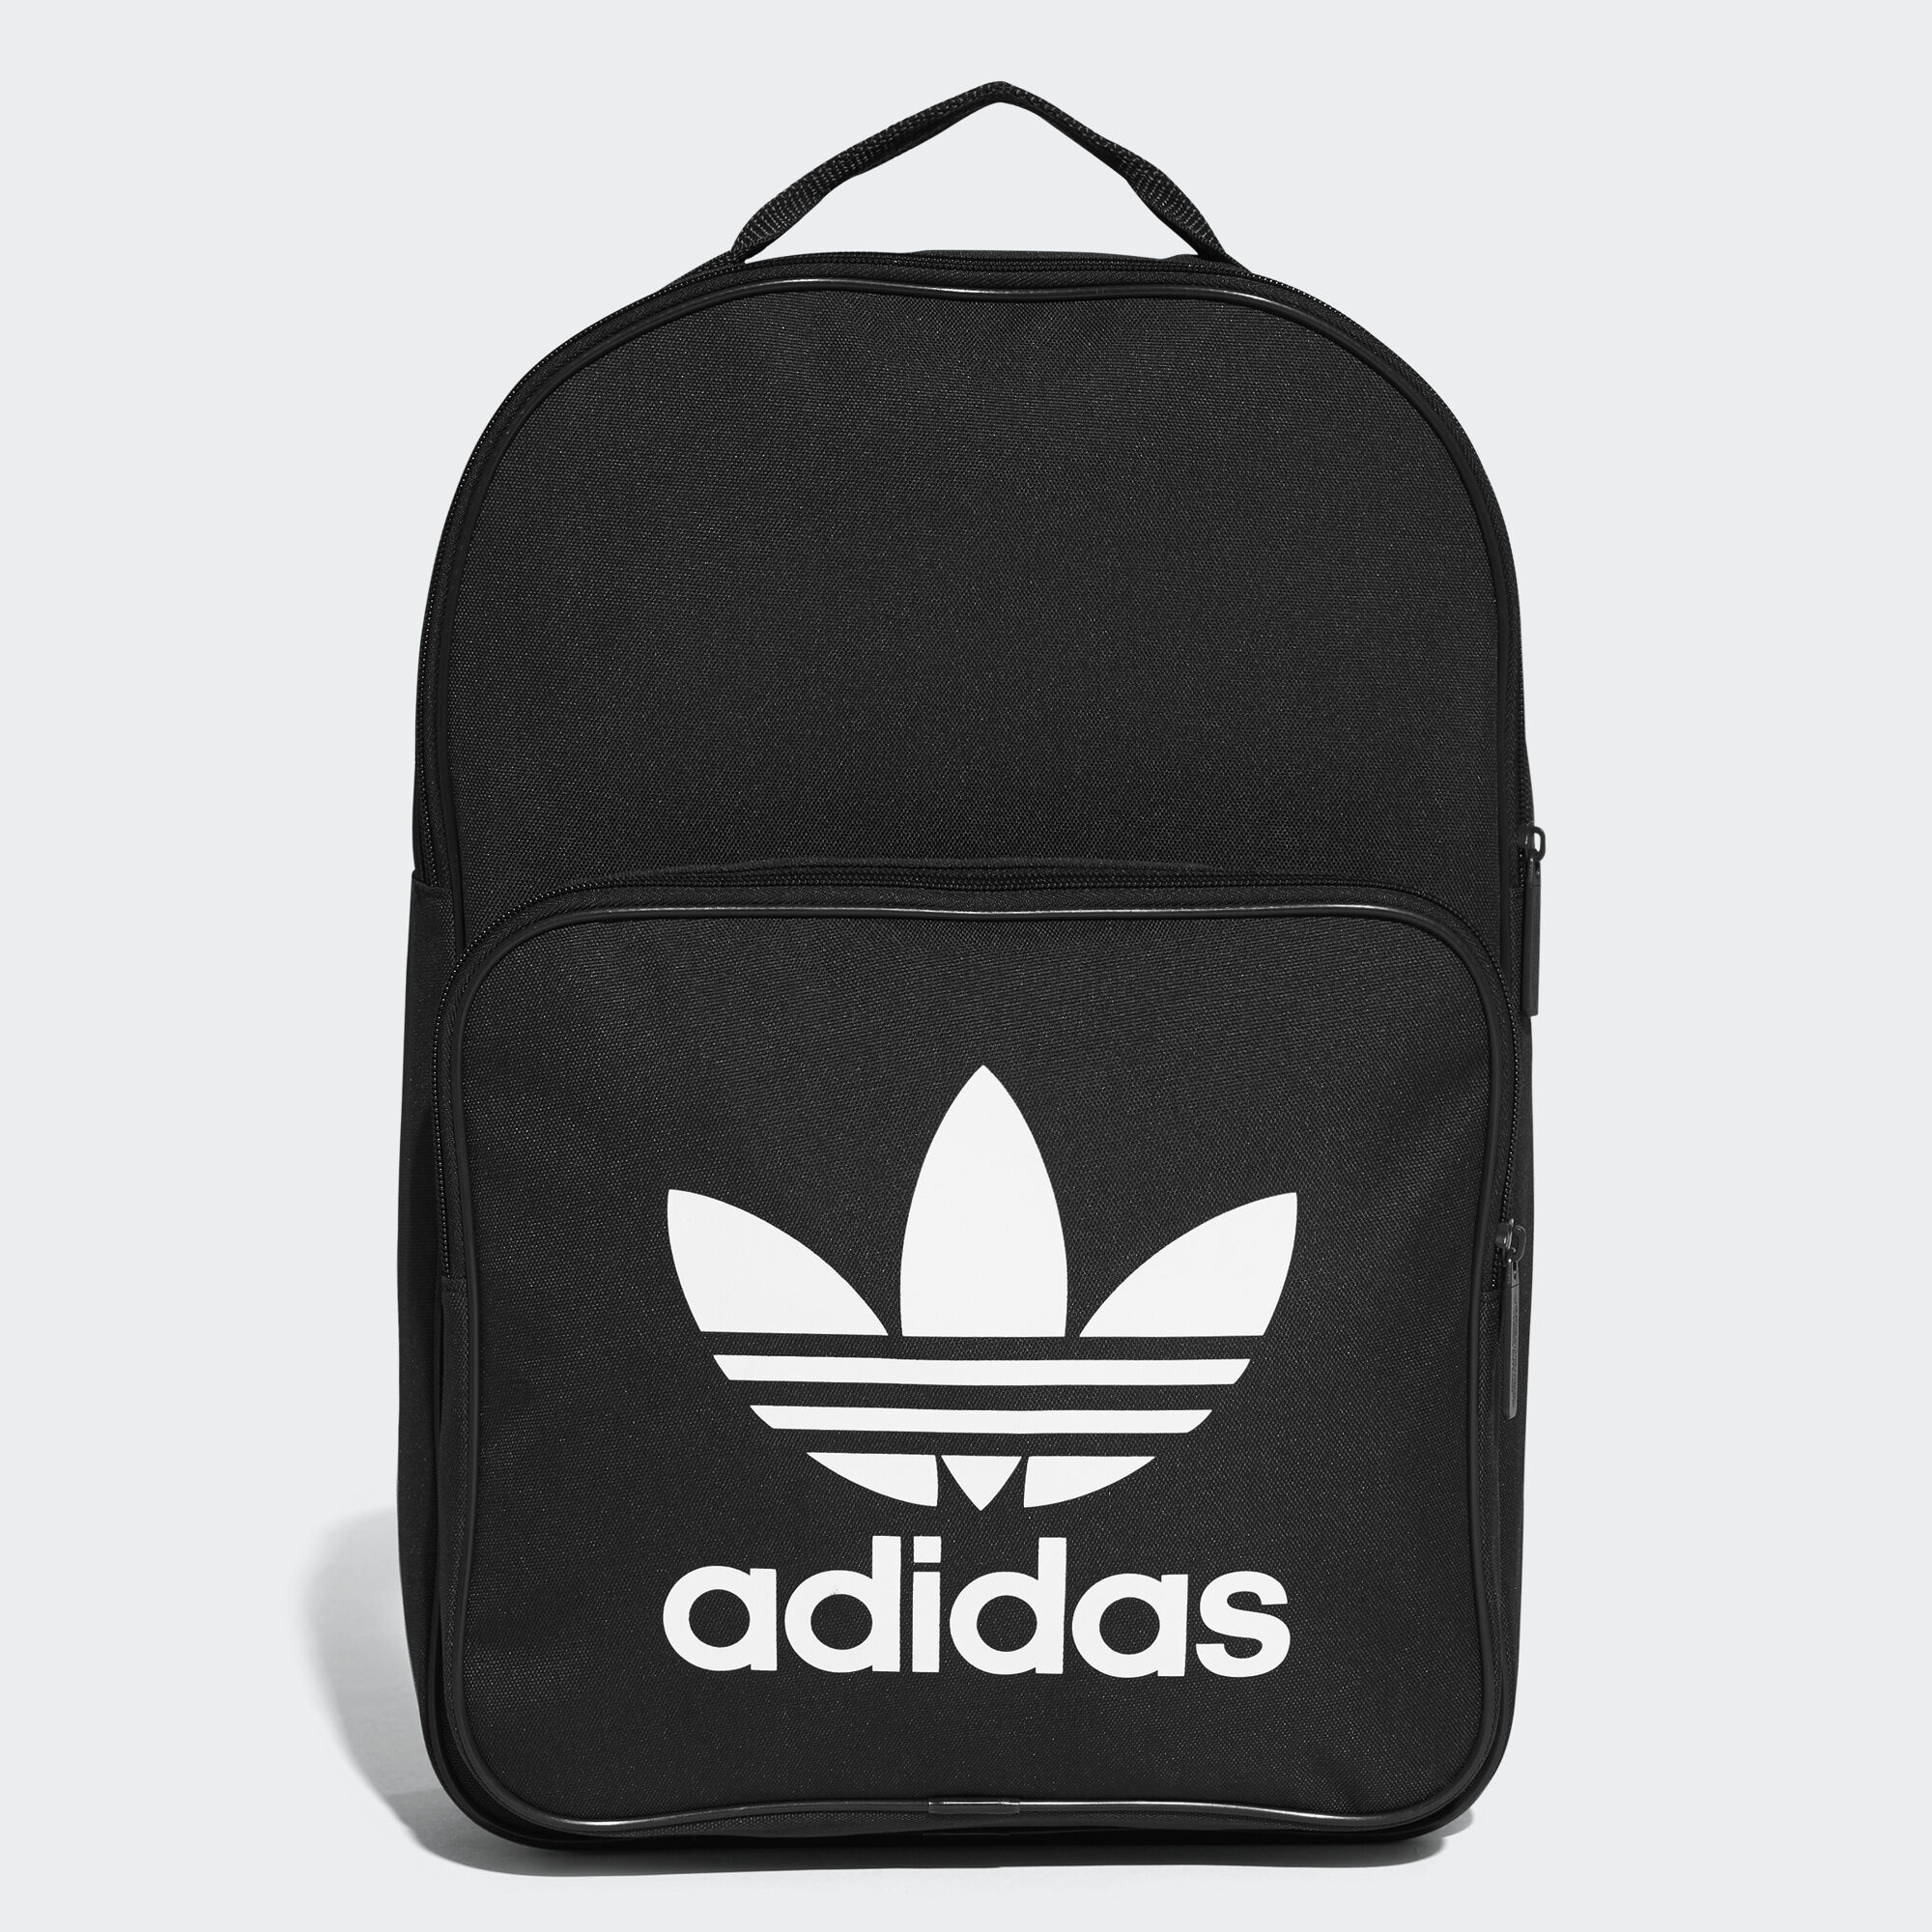 Buy adidas messenger bag black gold   OFF57% Discounted 98355caaa6985